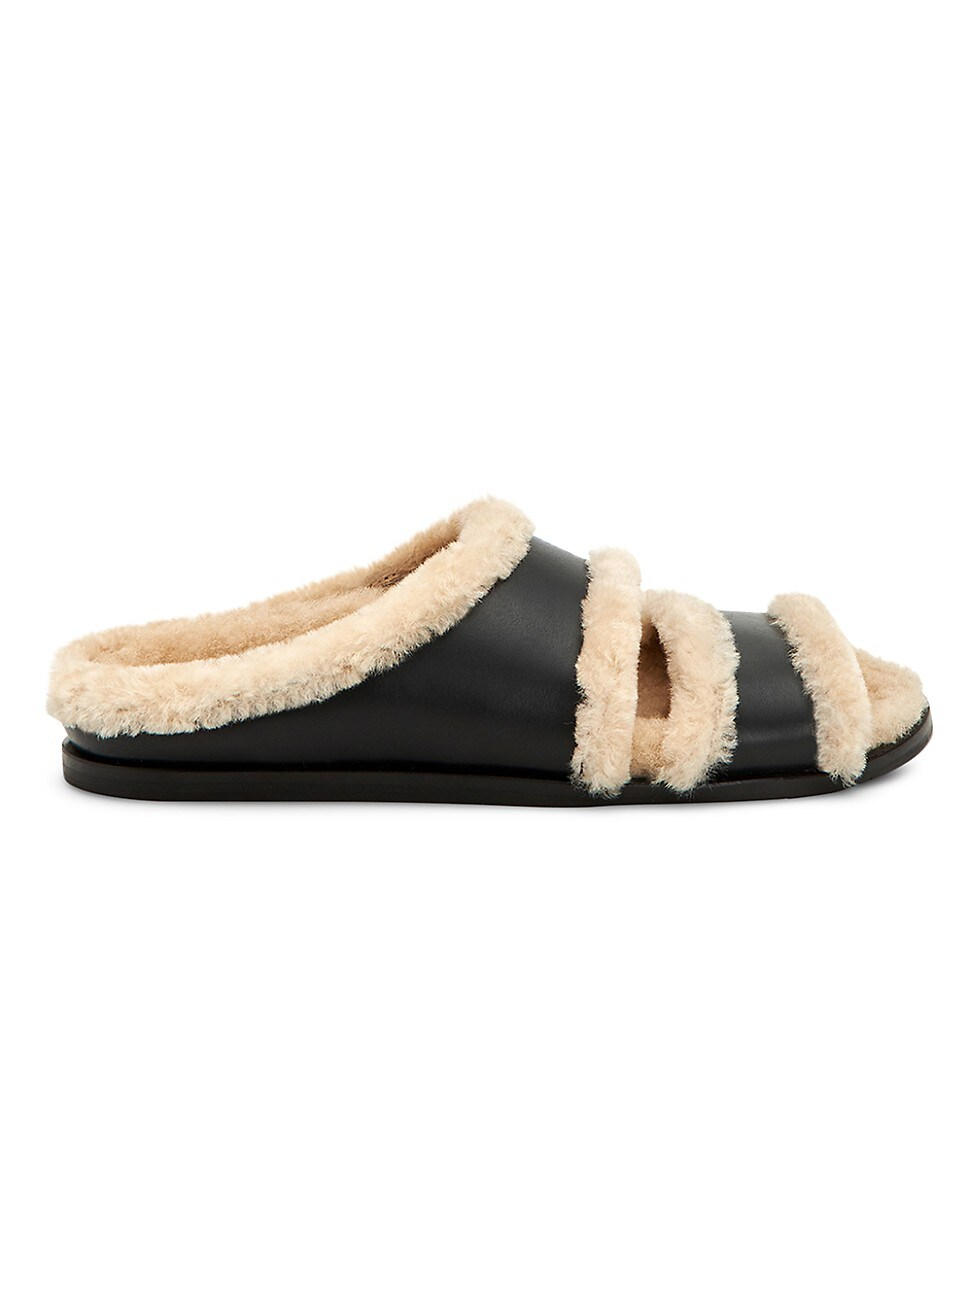 Aquatalia WOMEN'S IMINA SHEARLING-LINED LEATHER SLIPPERS